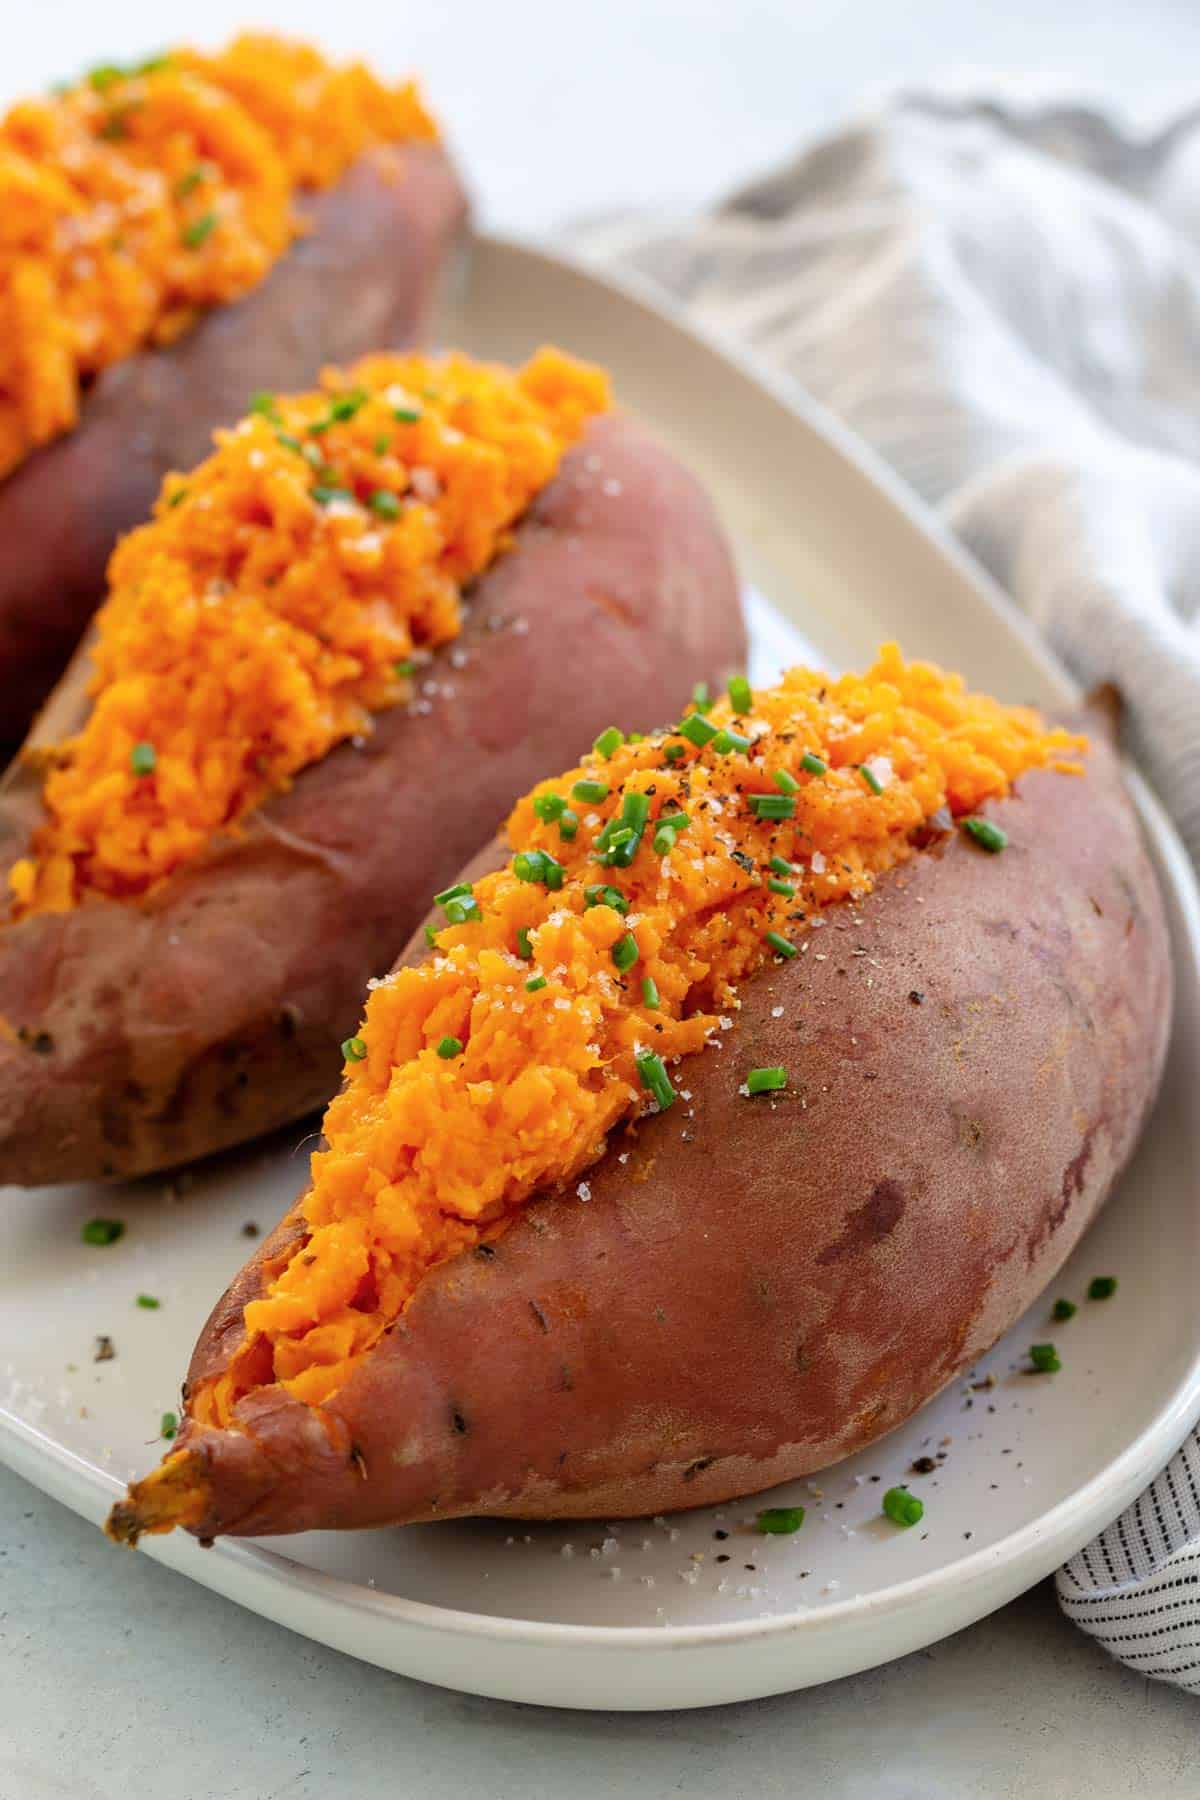 Three baked sweet potatoes on a white serving platter